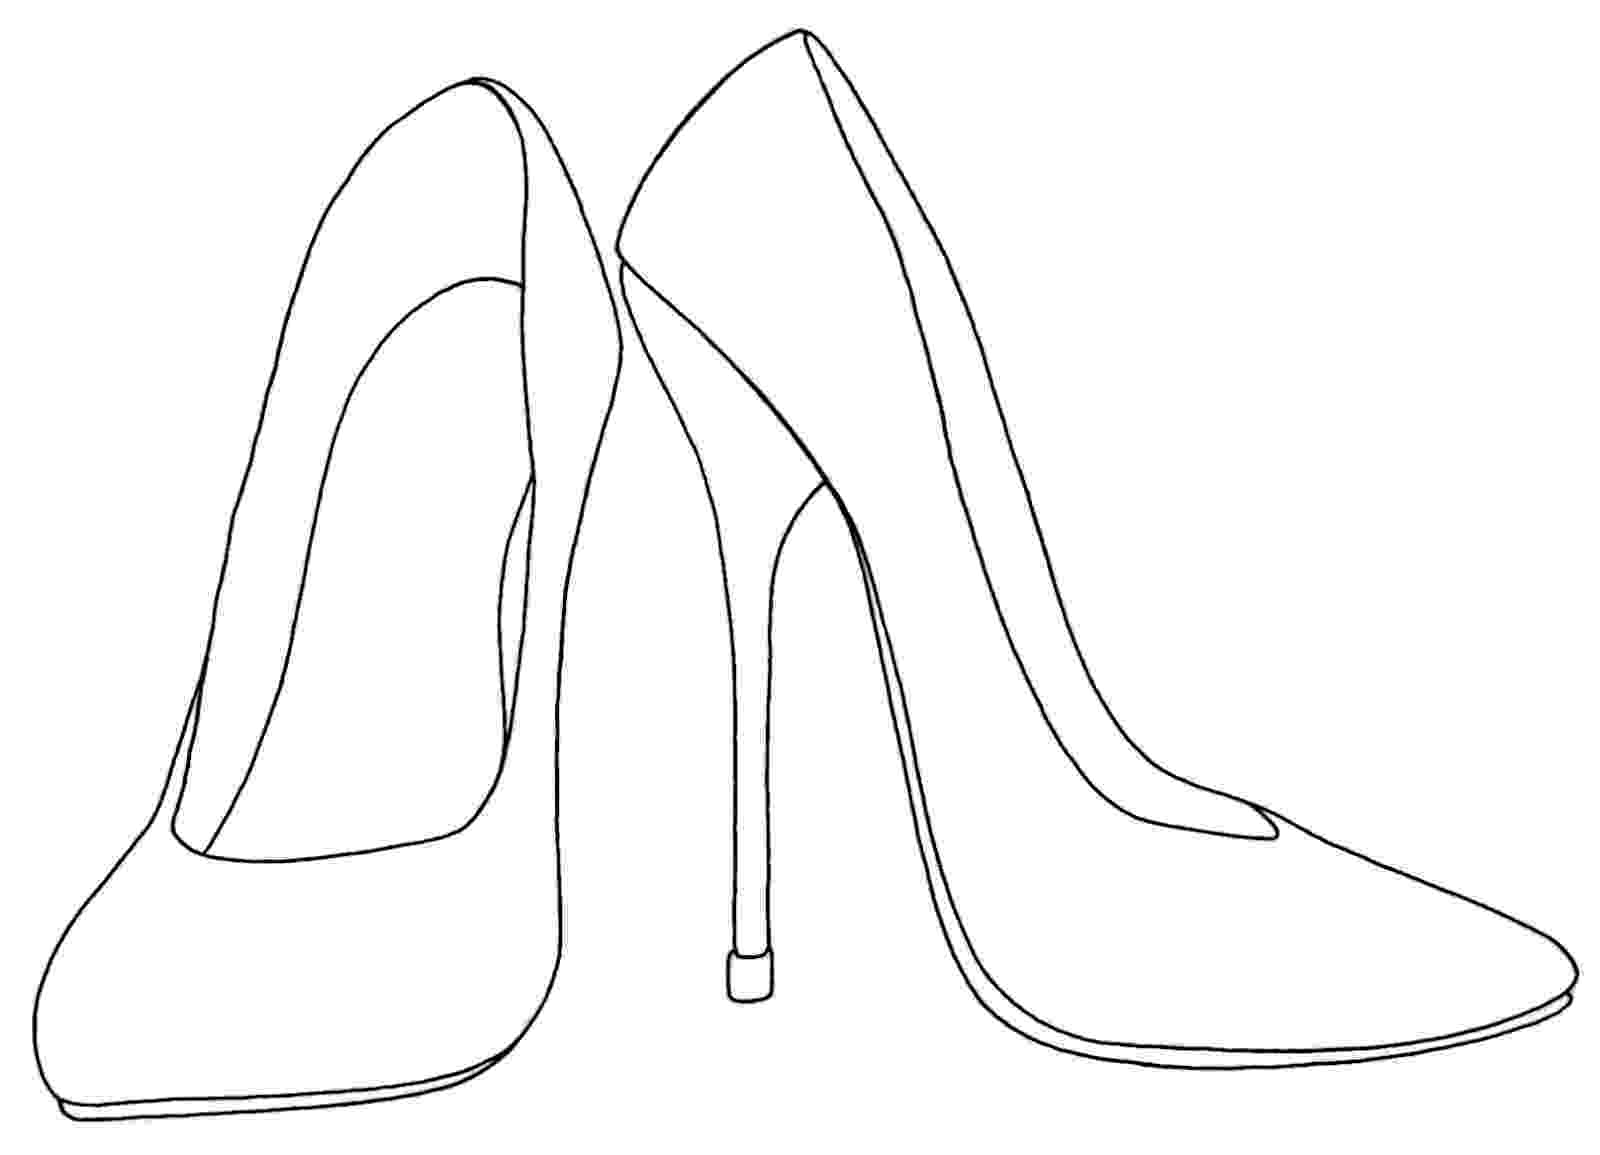 heels sketch yucca flats nm wenchkin39s coloring pages day of the sketch heels